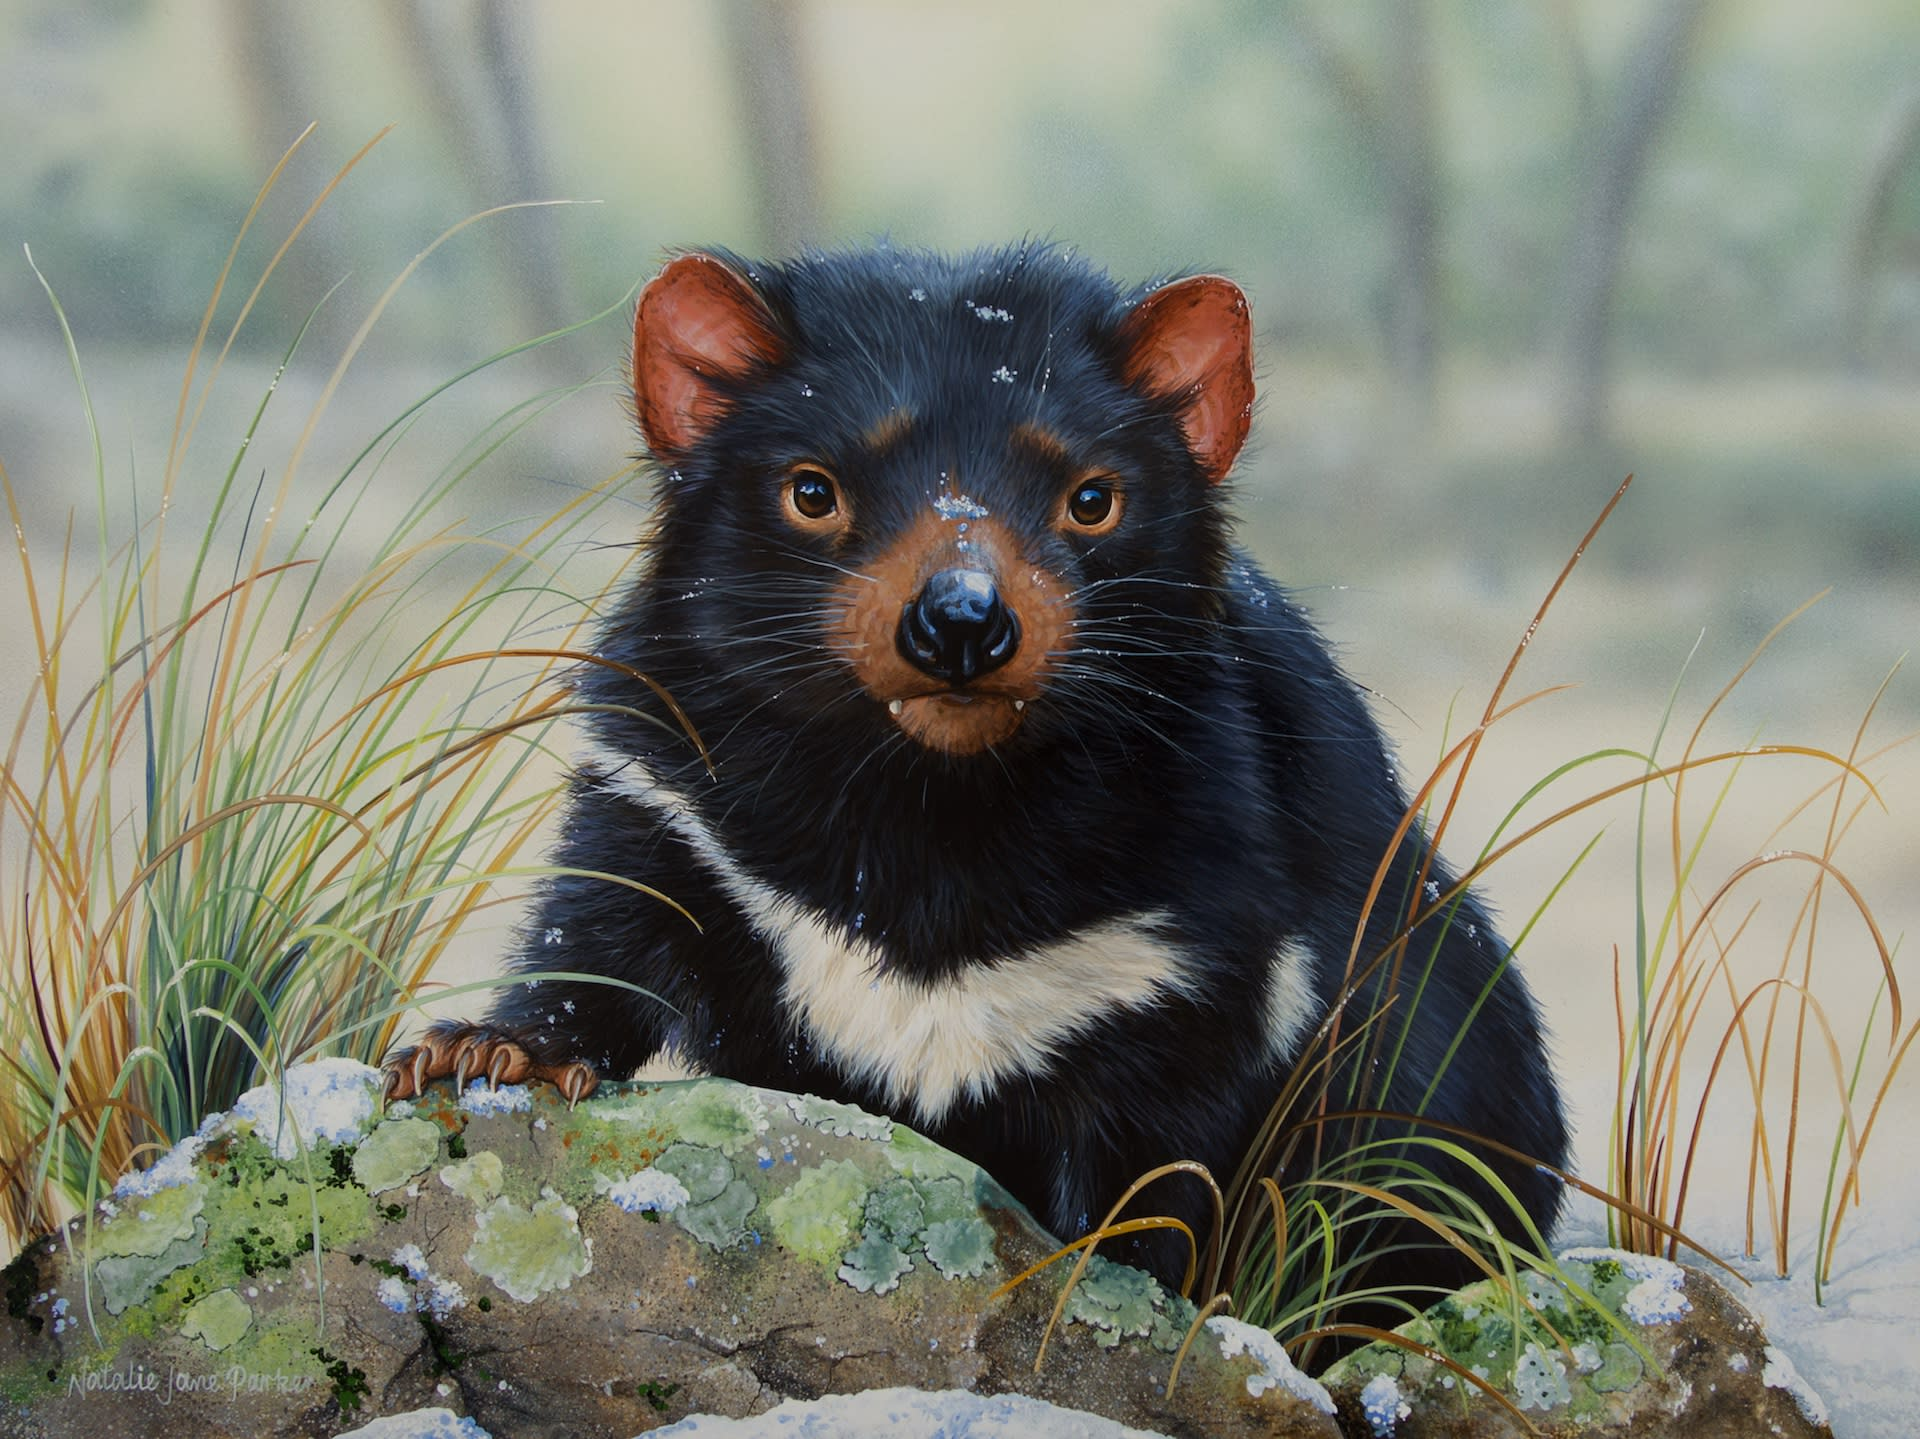 Winter whiskers tasmanian devil natalie jane parker july 2016 fruch1